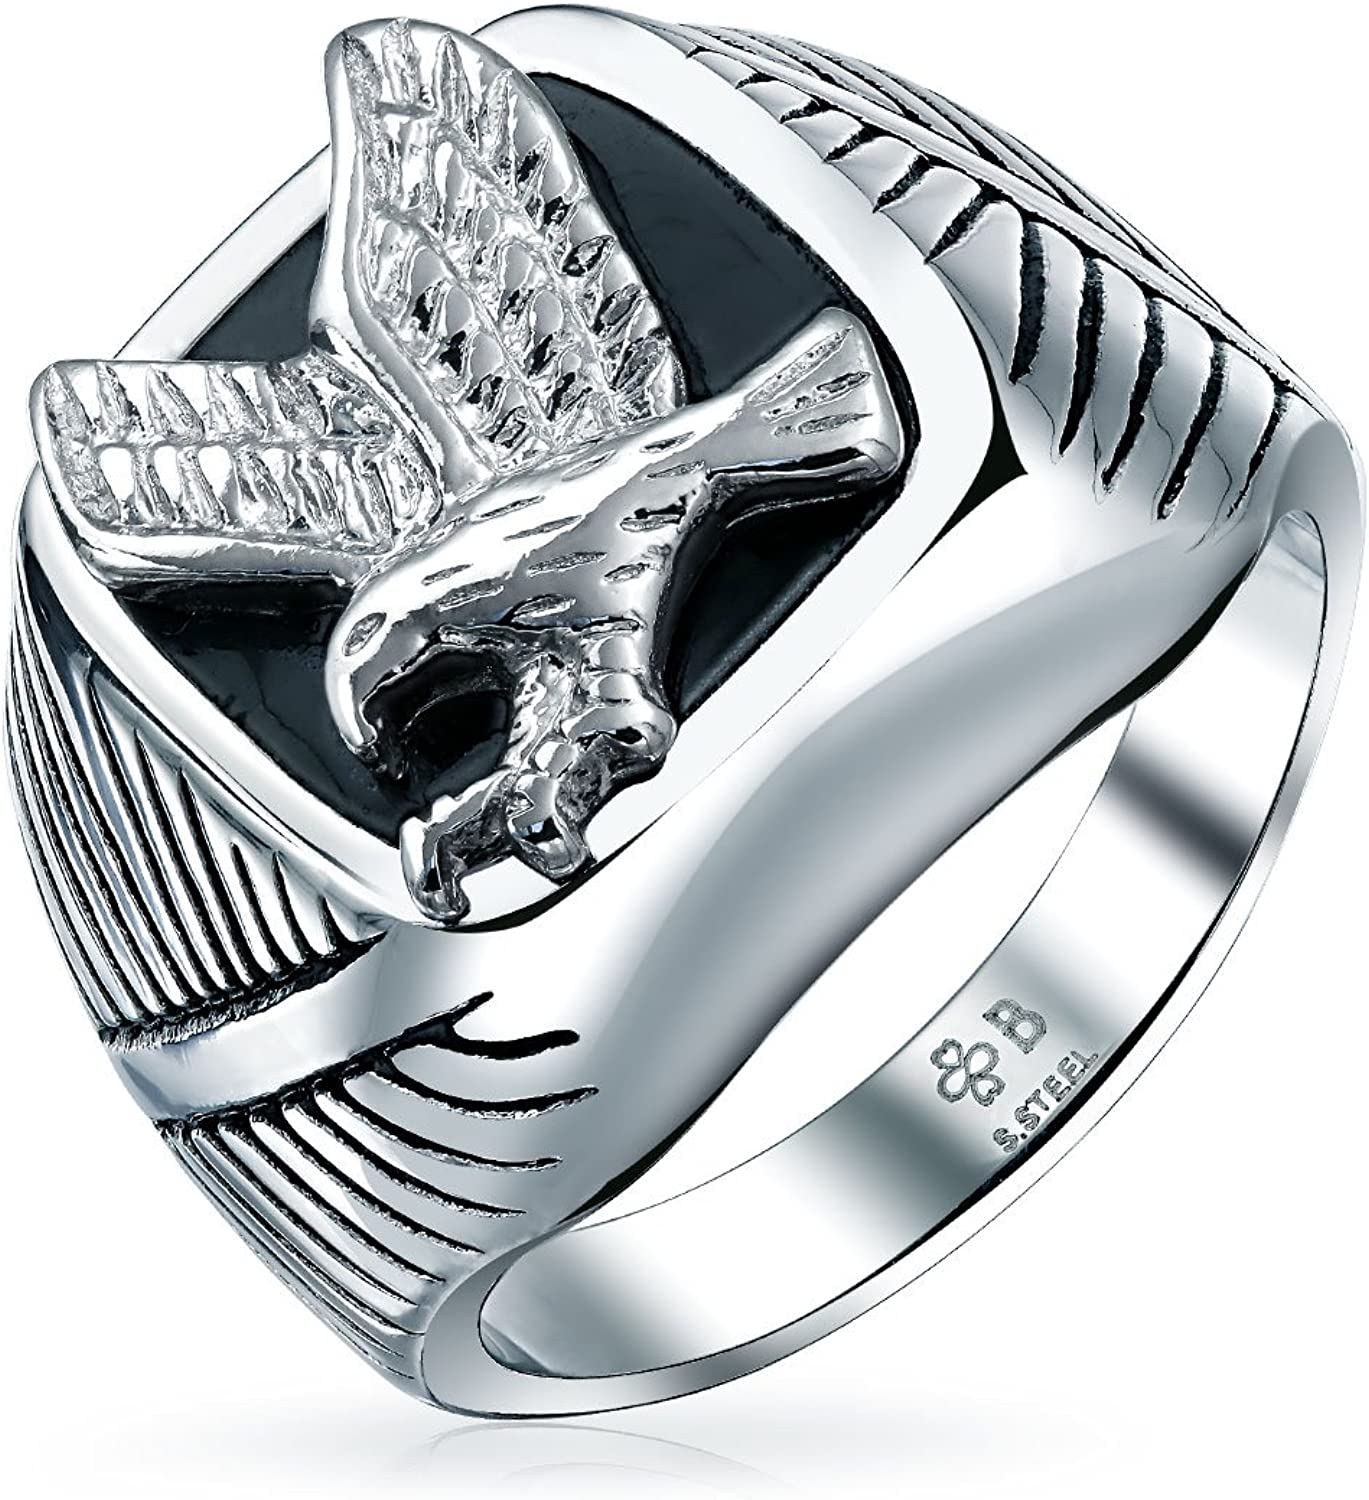 Mens Statement Black Patriotic USA Flying American Bald Eagle Square Signet Ring for Men Silver Tone Stainless Steel